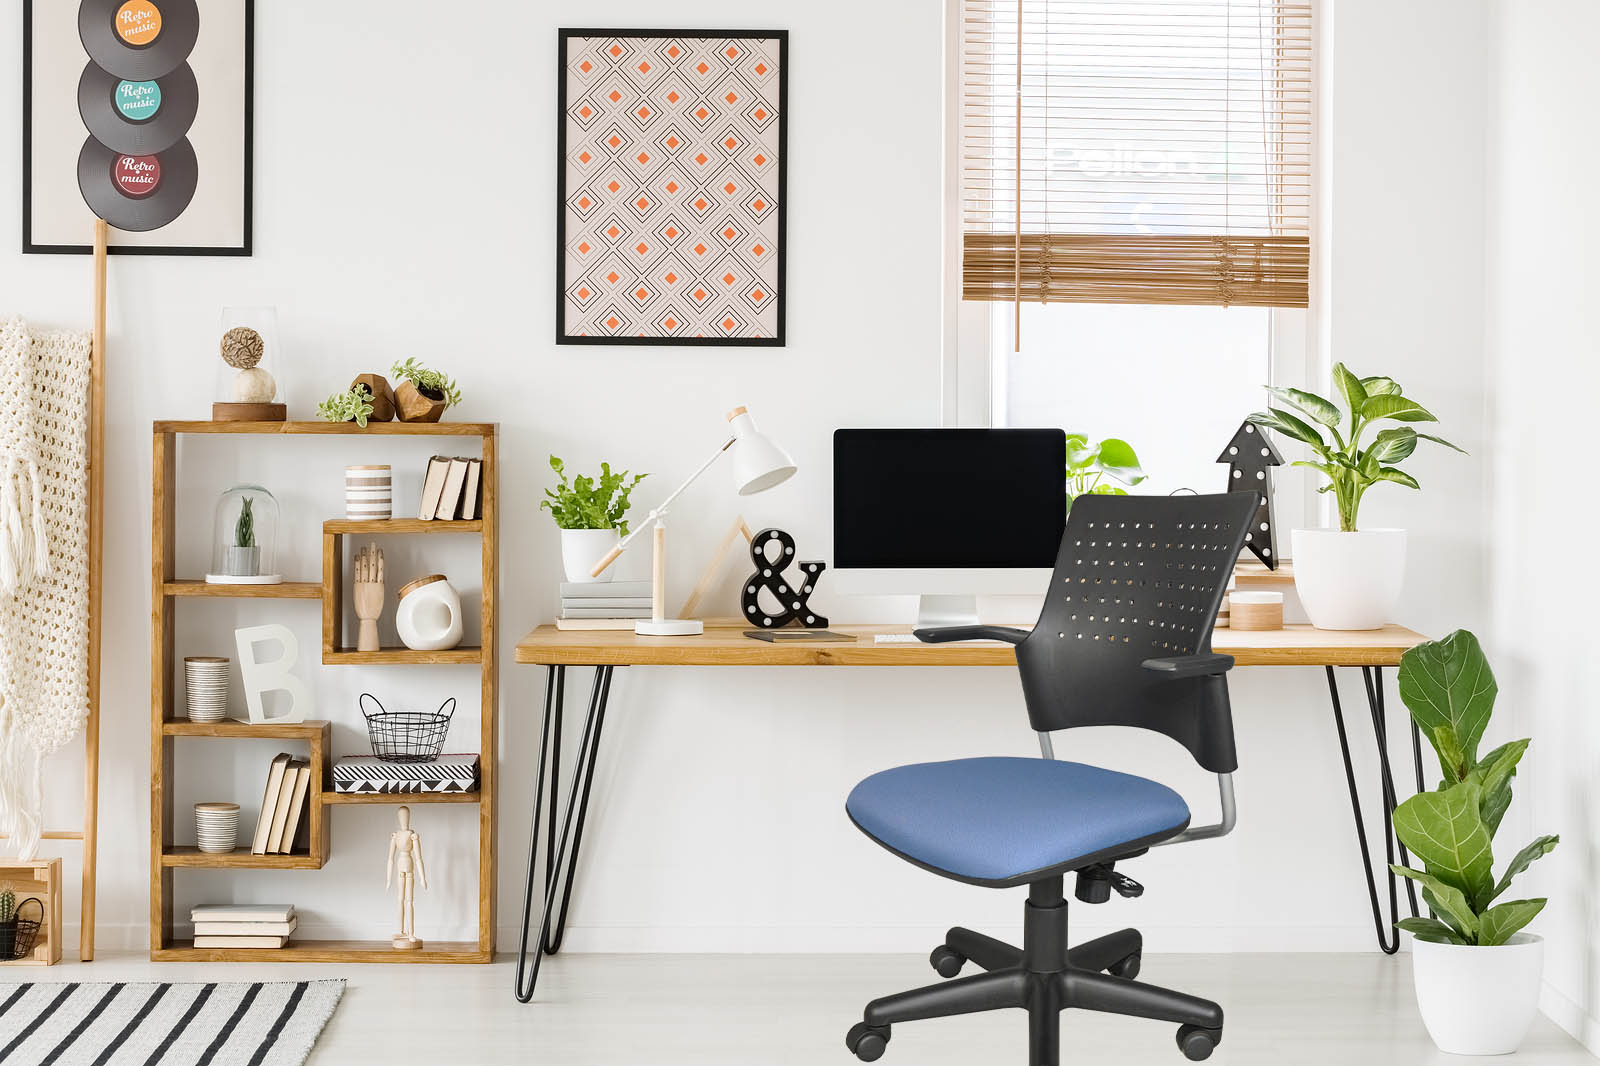 Snap chair with blue seat at desk in dorm room